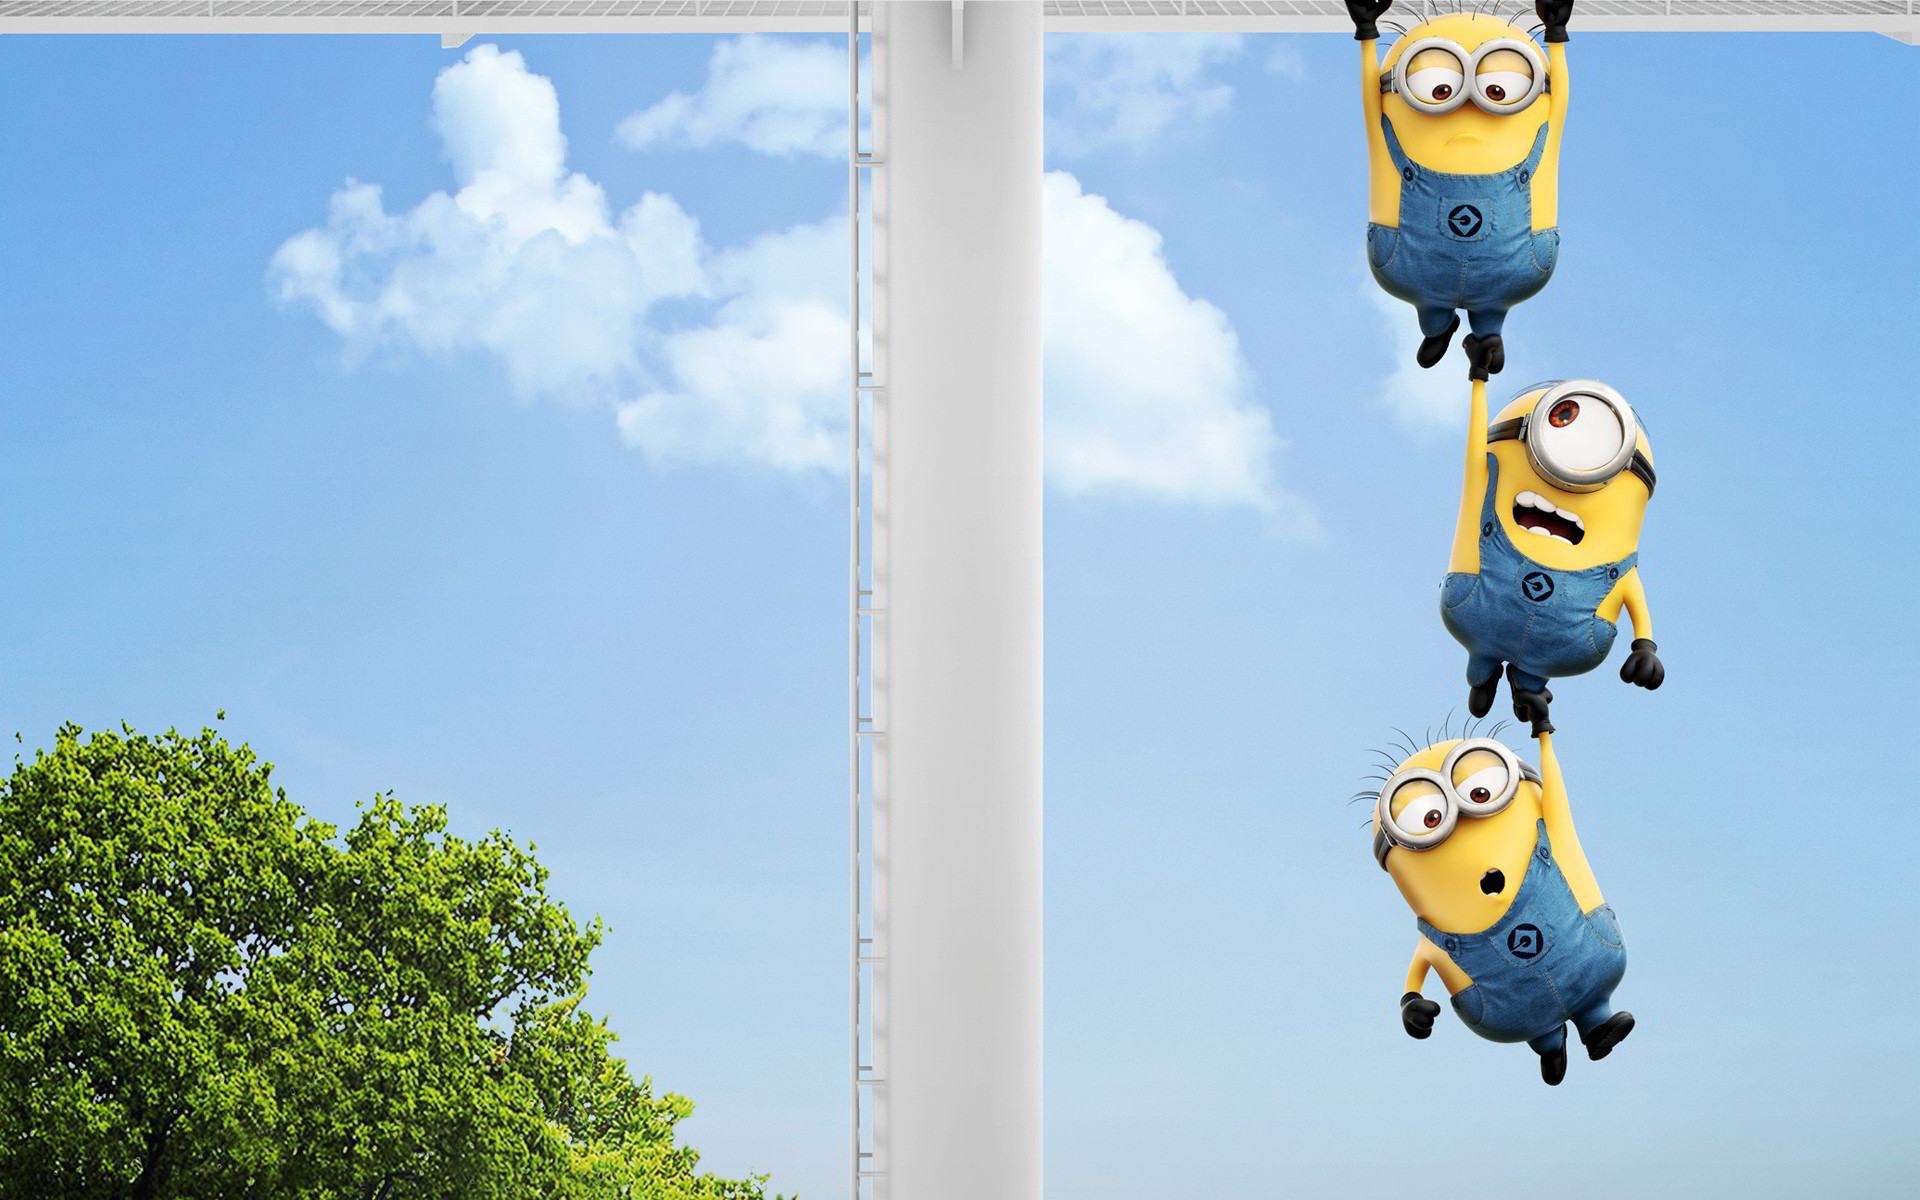 Minions Wallpapers HD Wallpapers Images Of Minions Wallpapers Wallpapers)